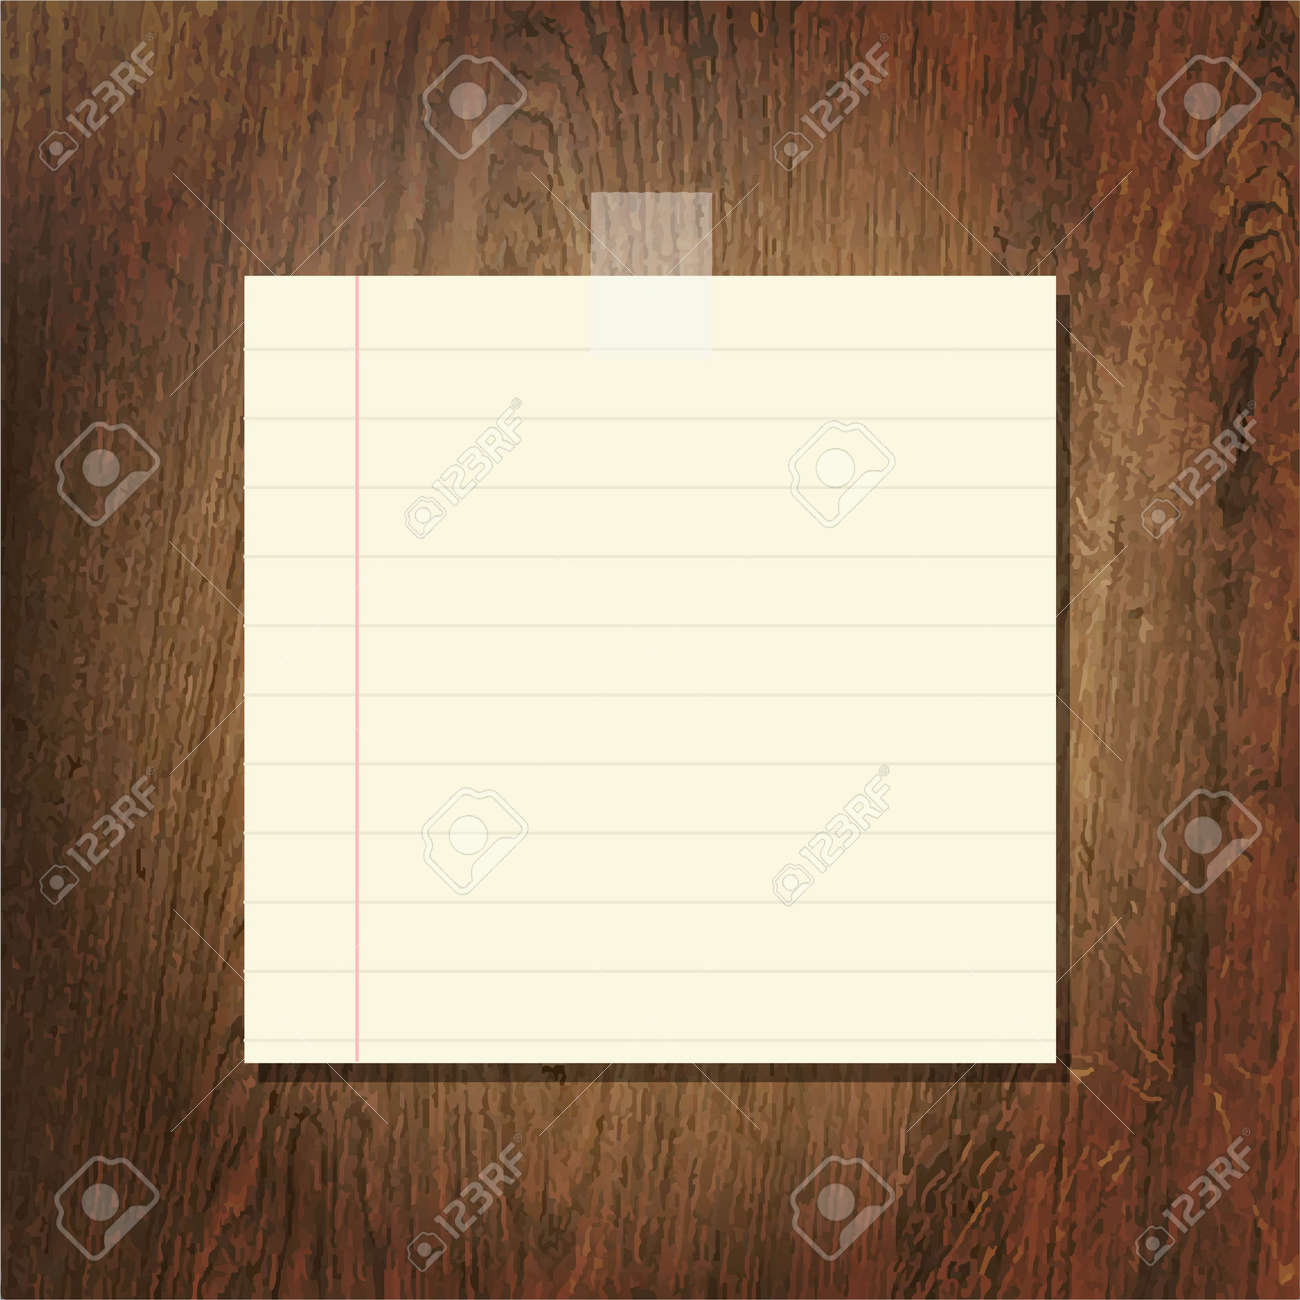 Note Papers On Wooden Background, Vector Illustration Stock Vector - 19714031